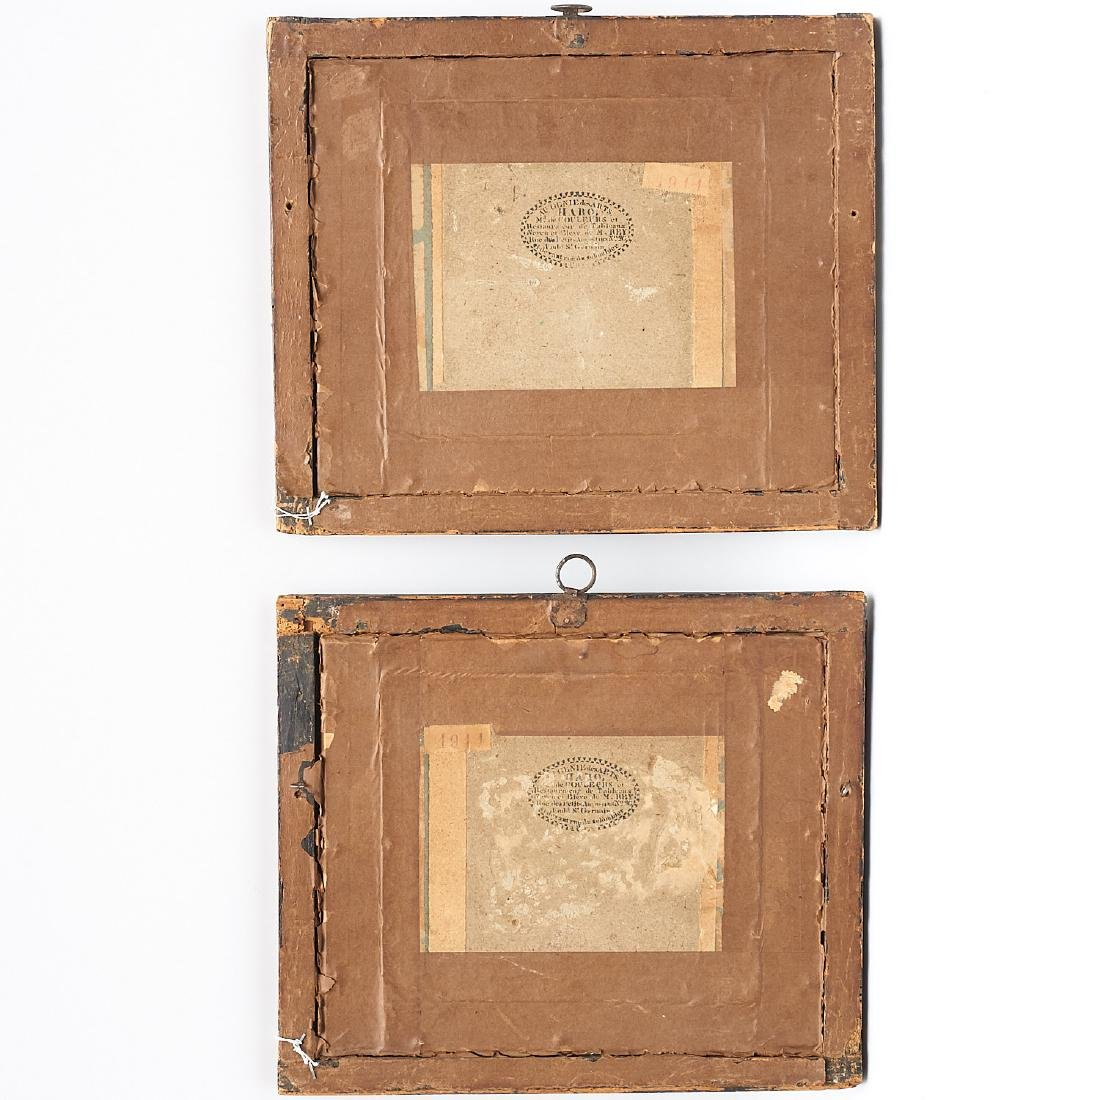 Giovanni Battista Tiepolo (after), (2) drawings - 6